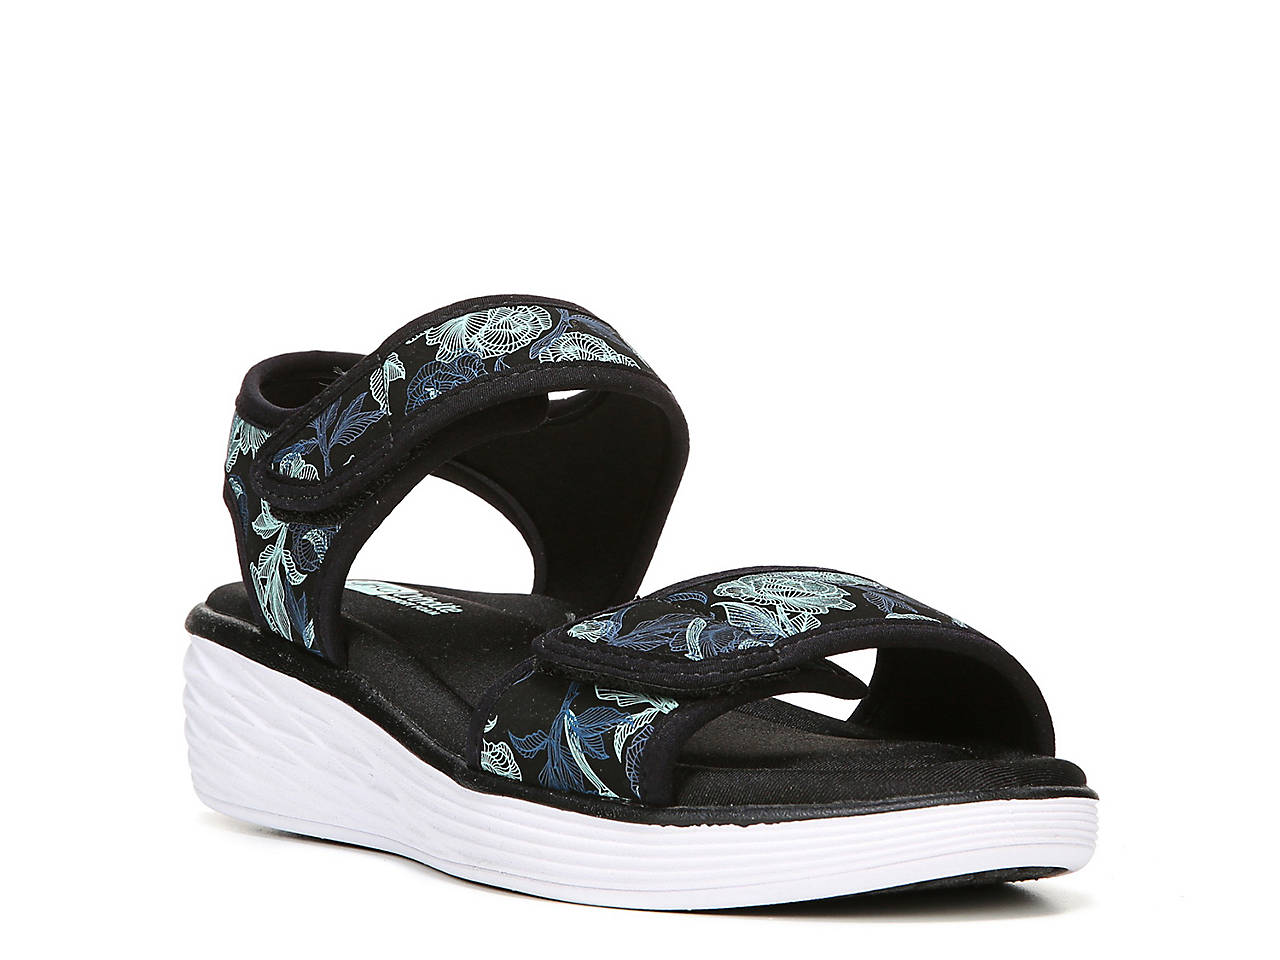 Ryka Nora Strappy Sandal - Wide Width Available bq0nRo